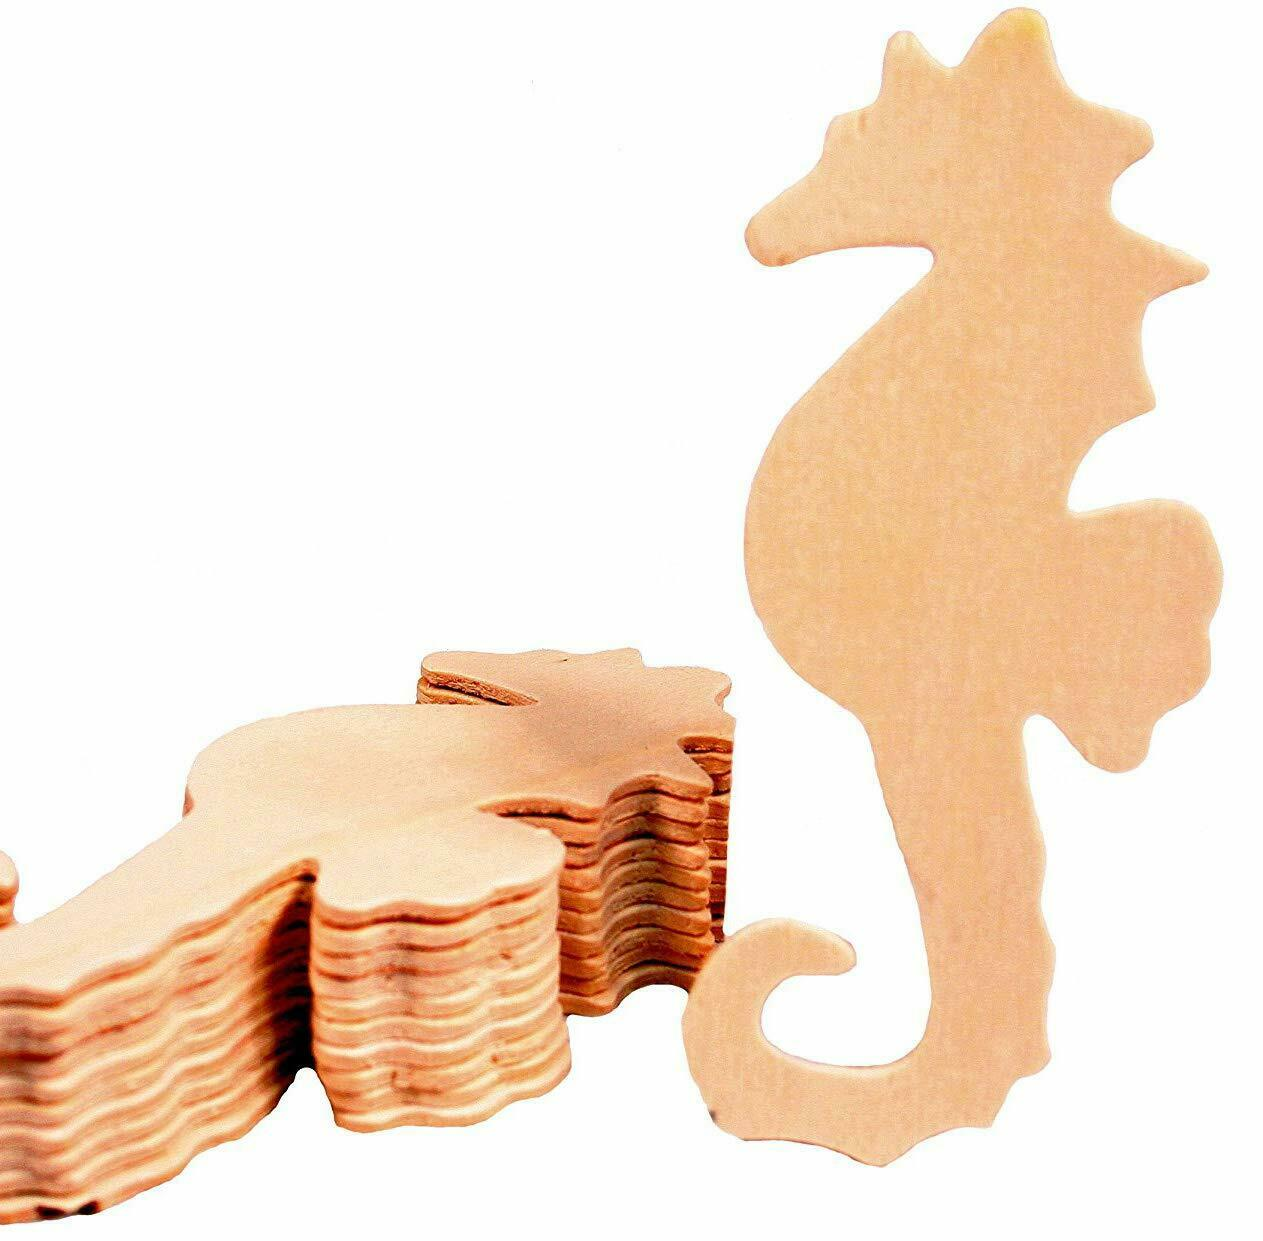 Creative Hobbies 5 Inch Seahorse Cutout Shapes, Unfinished Wood, Pack of 12 Crafting Pieces